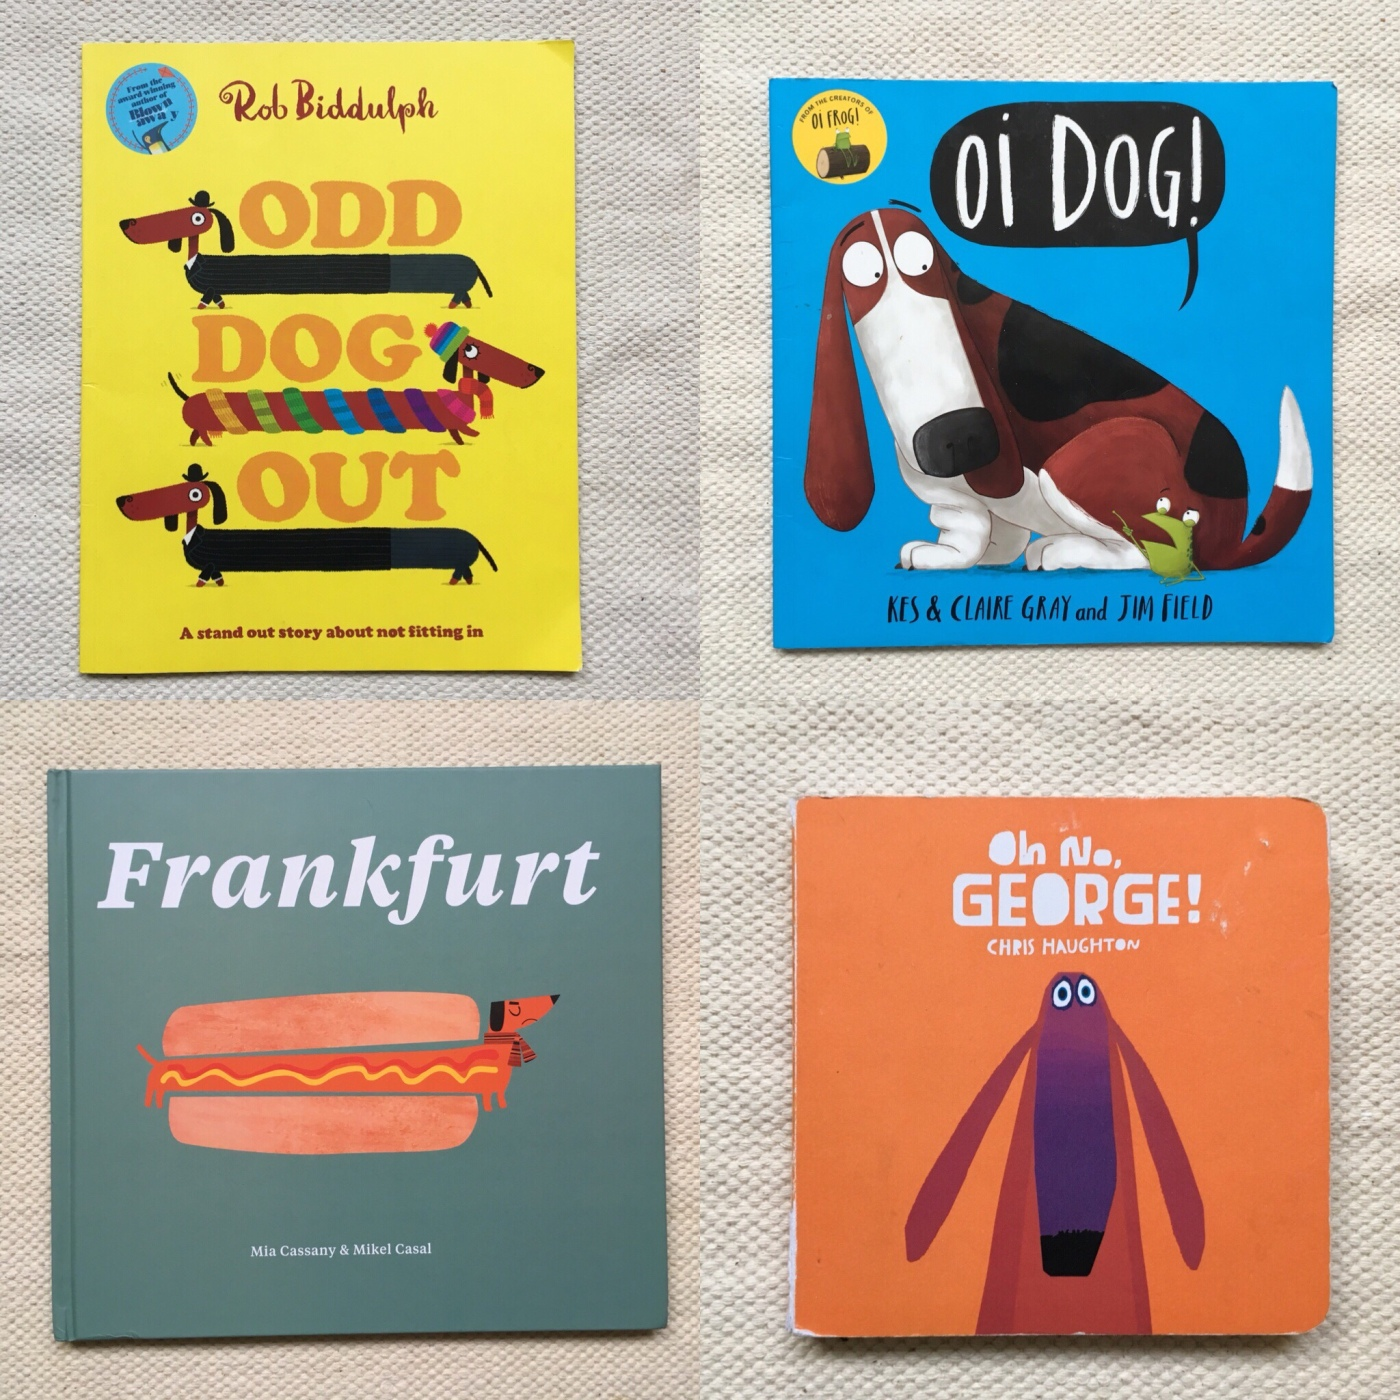 Children's books about dogs